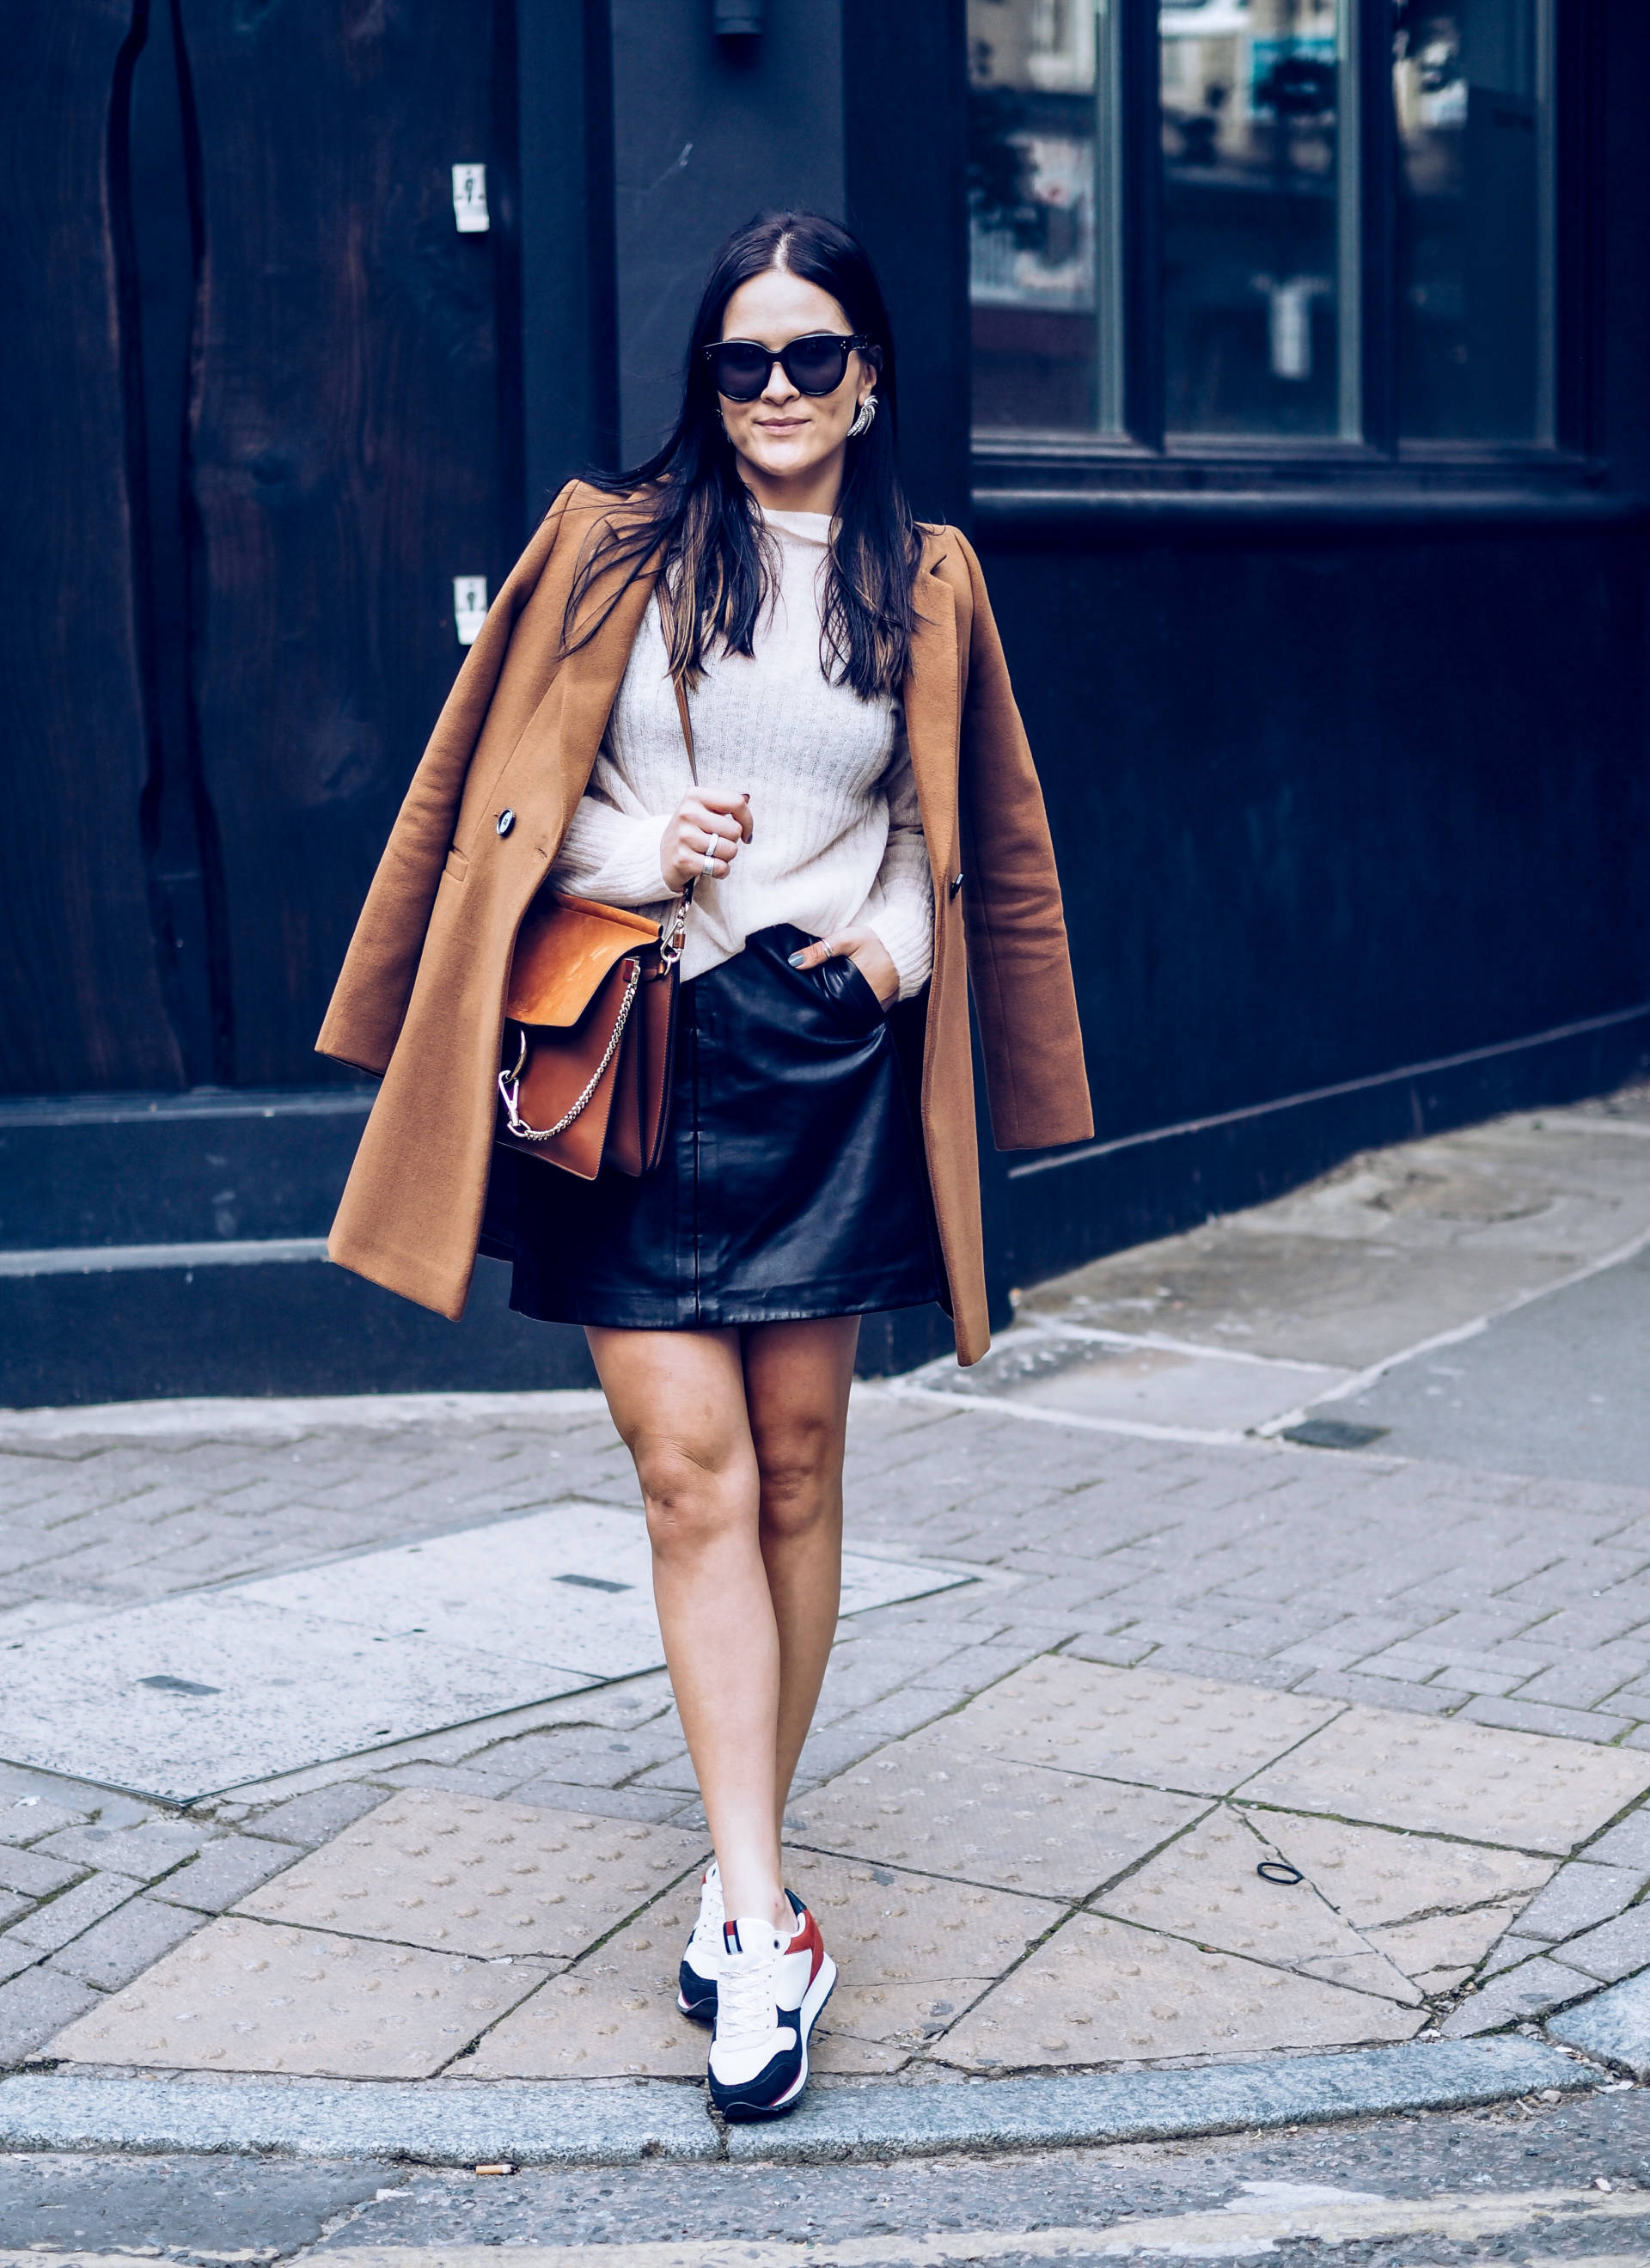 LFW street style - label online warehouse coat, tommy hillfiger trainers and chloe faye bag london fashion week